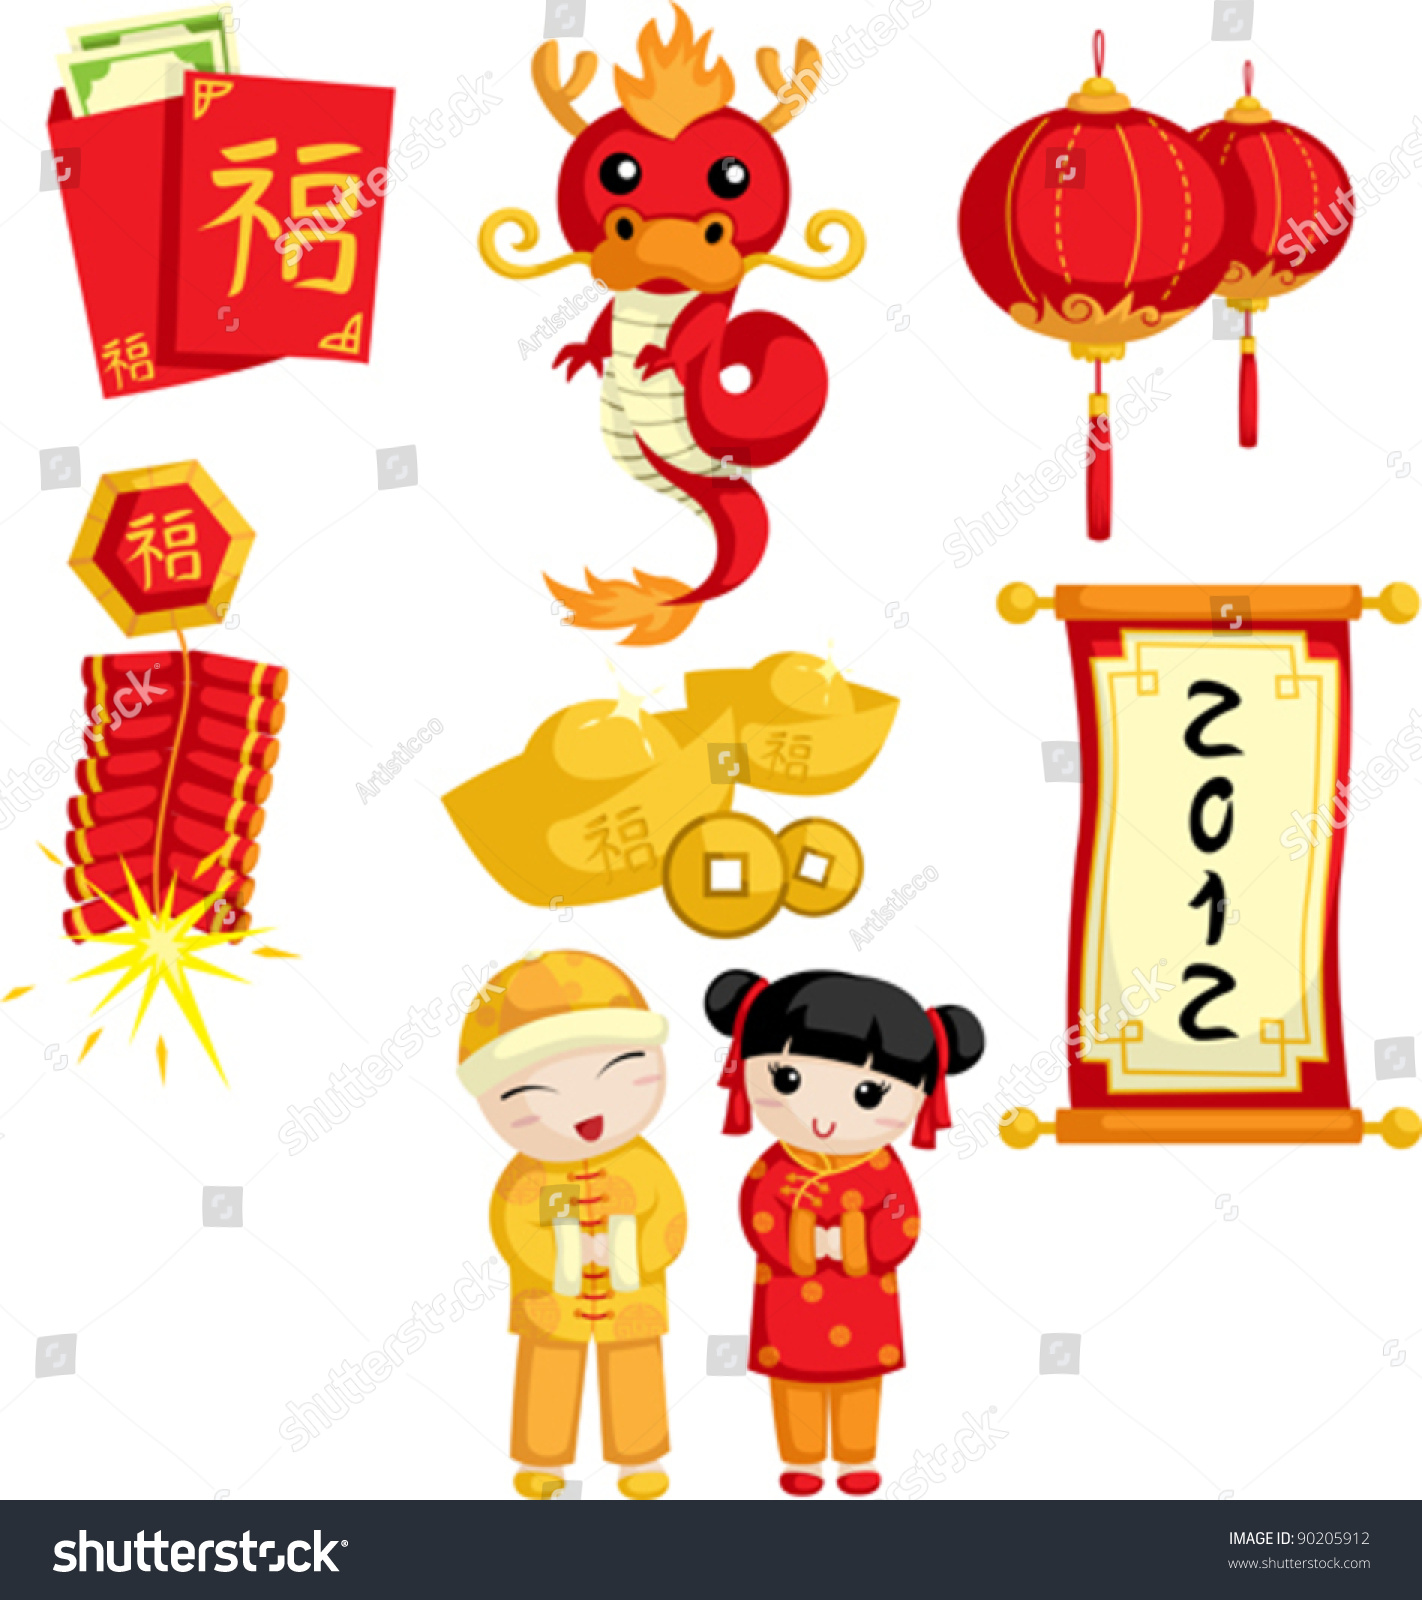 Chinese Calendar Illustration : Vector illustration chinese new year items stock